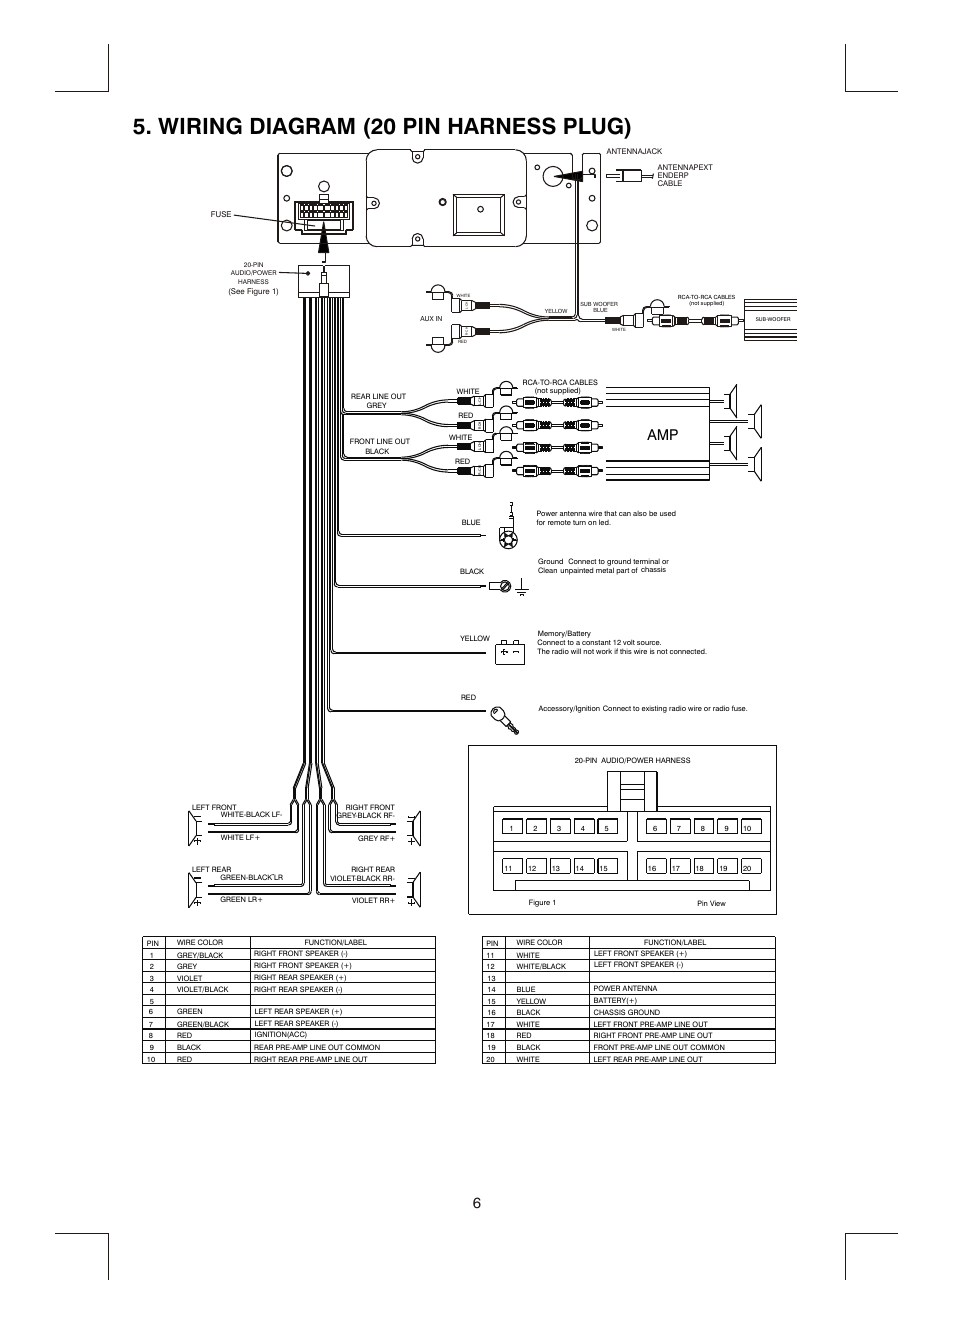 Boss 611Uab Wiring Harness Diagram from annawiringdiagram.com